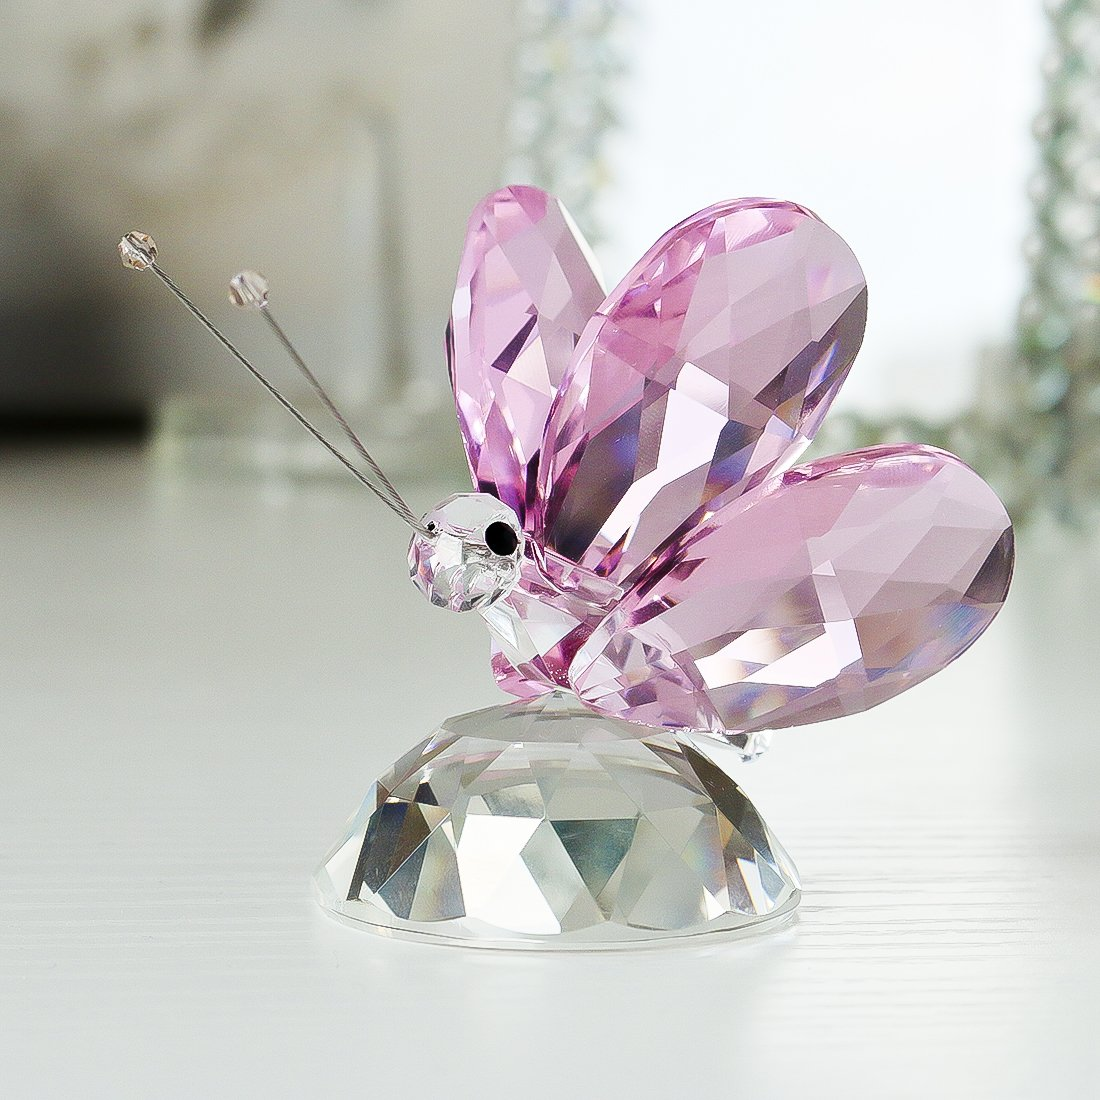 H/&D Crystal Flying Butterfly with Crystal Base Figurine Collection Cut Glass Ornament Statue Animal Collectible Paperweight Purple